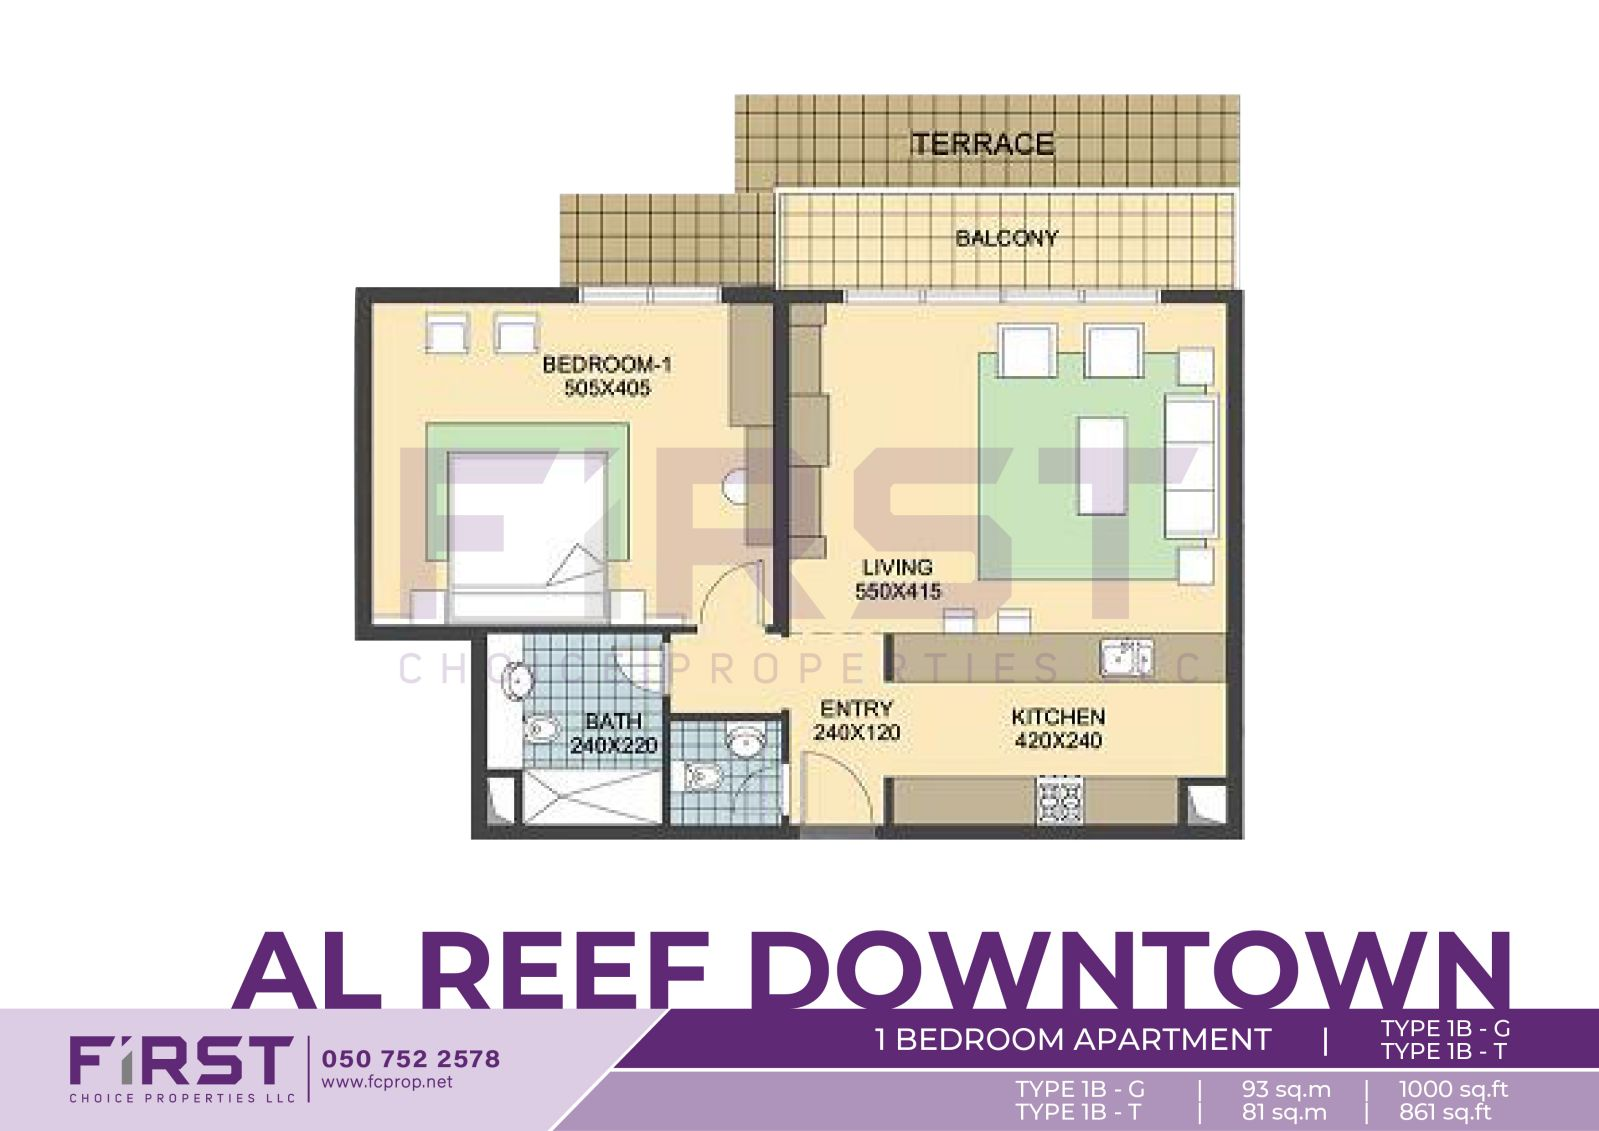 Floor Plan of 1 Bedroom Apartment TYPE 1B-G in Al Reef Downtown Al Reef Abu Dhabi UAE 93 sq.m 1000 sq.ft T  81 sq.m - 861 sq.ft.jpg